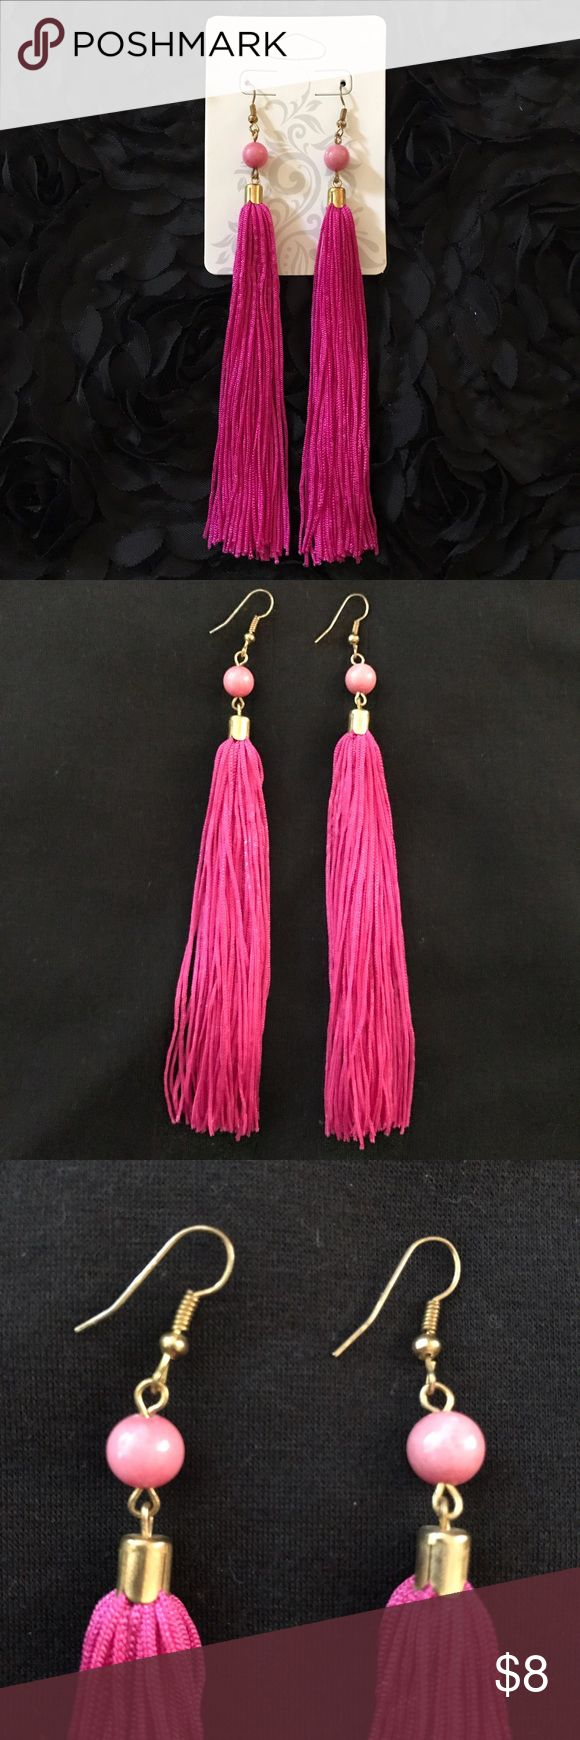 Hot Pink Tassel Earrings ☘️Item #: 16 ☘️Hot Pink Tassel Earrings. Never worn but no tag any more. ☘️FAST SHIPPING: same day | next morning depending on when purchased. ☘️BUNDLED DISCOUNTS! Jewelry Earrings